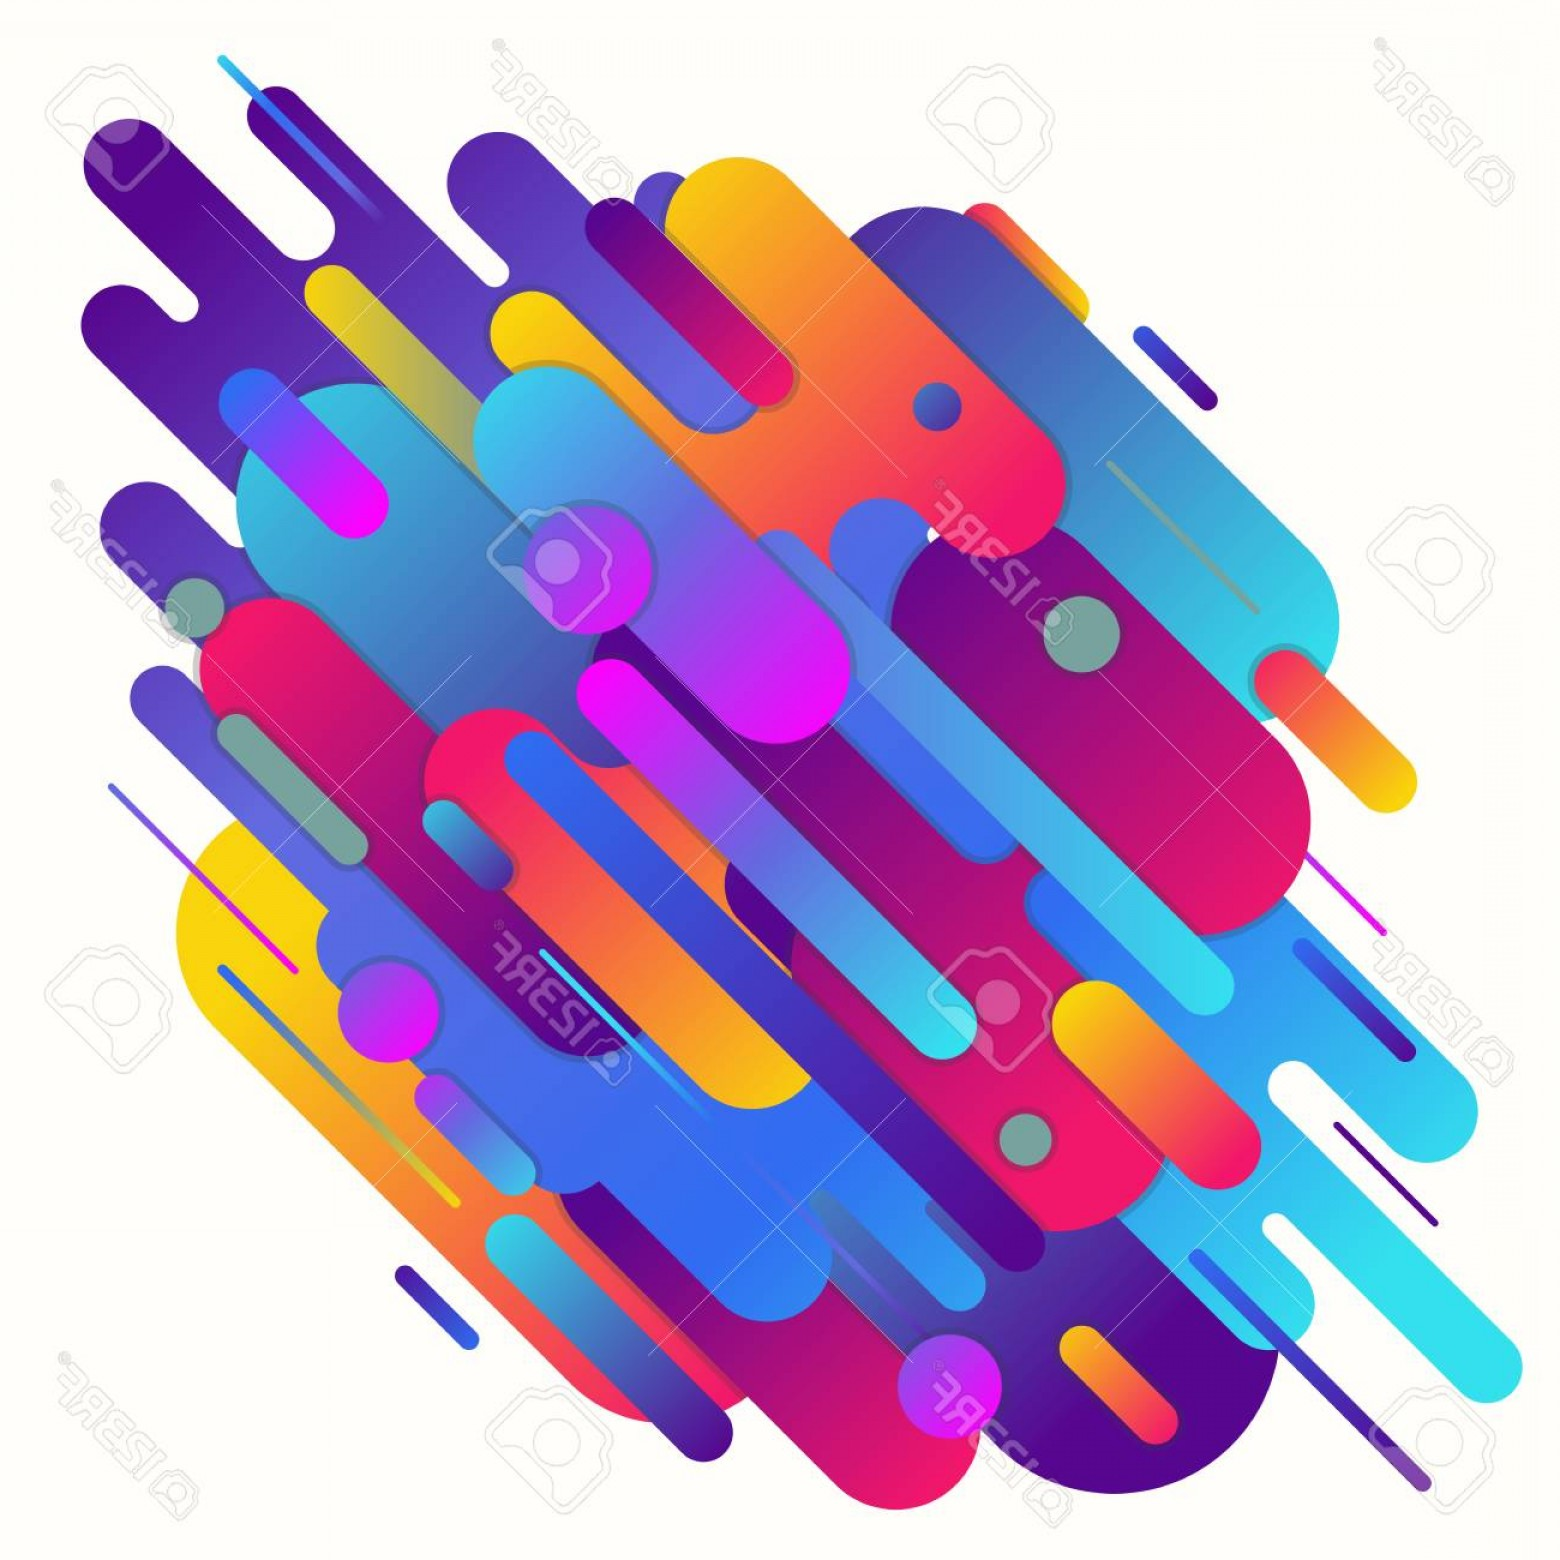 Vector Geometric Abstract Shapes Phone Wallpapers: Photostock Vector Geometric Abstract Gradient Vector Background Geometric Shapes With Gradients And Rounded Corners Di